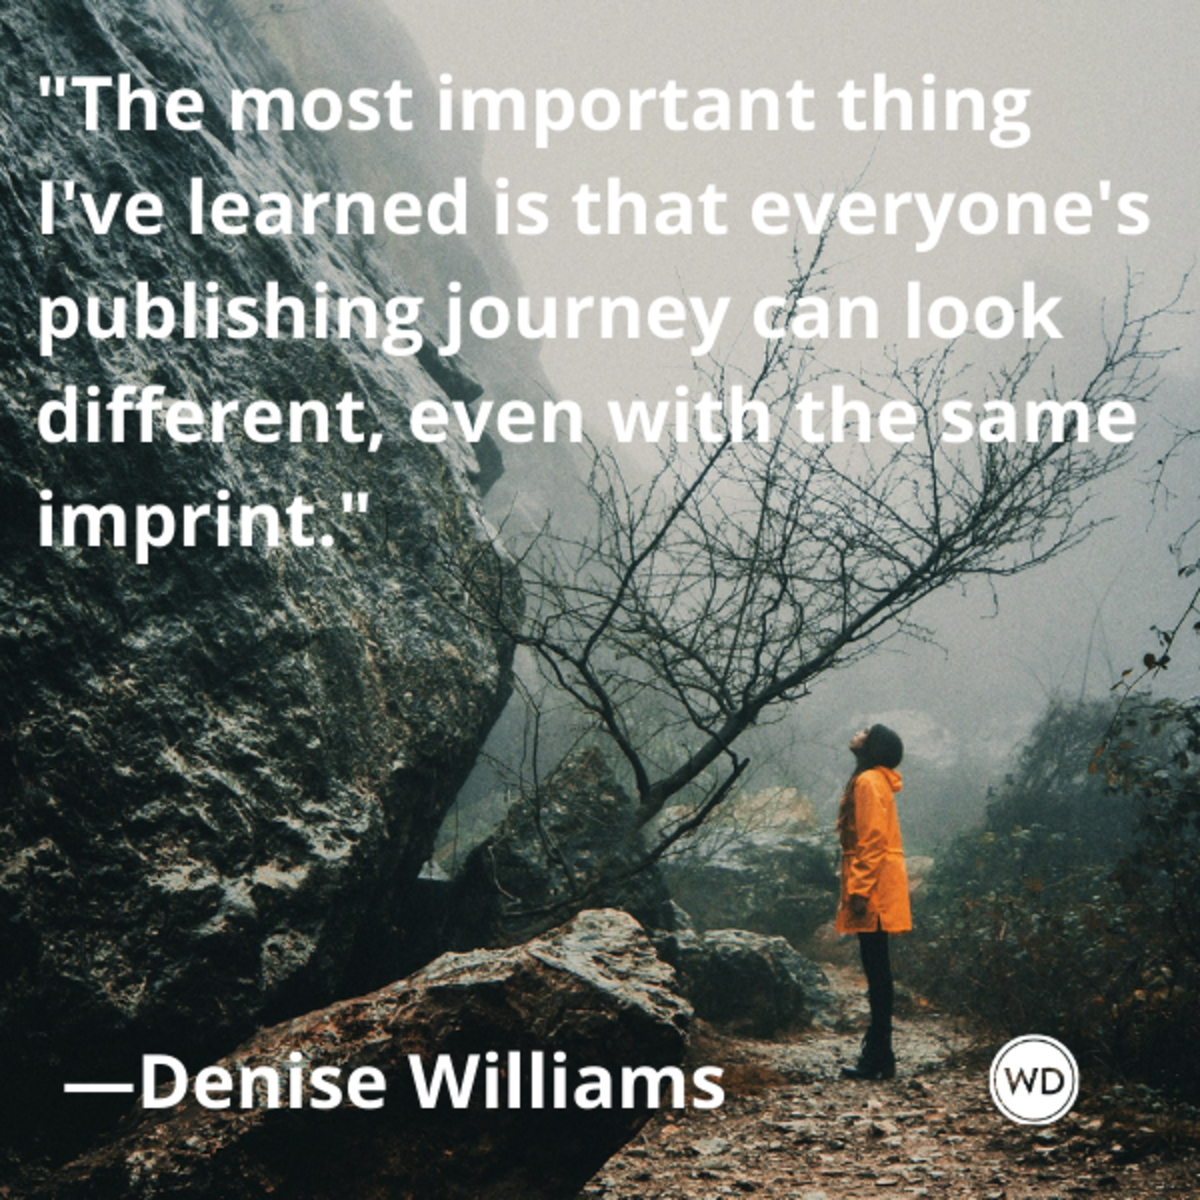 denise_williams_quotes_ive_learned_everyones_publishing_journey_can_look_different